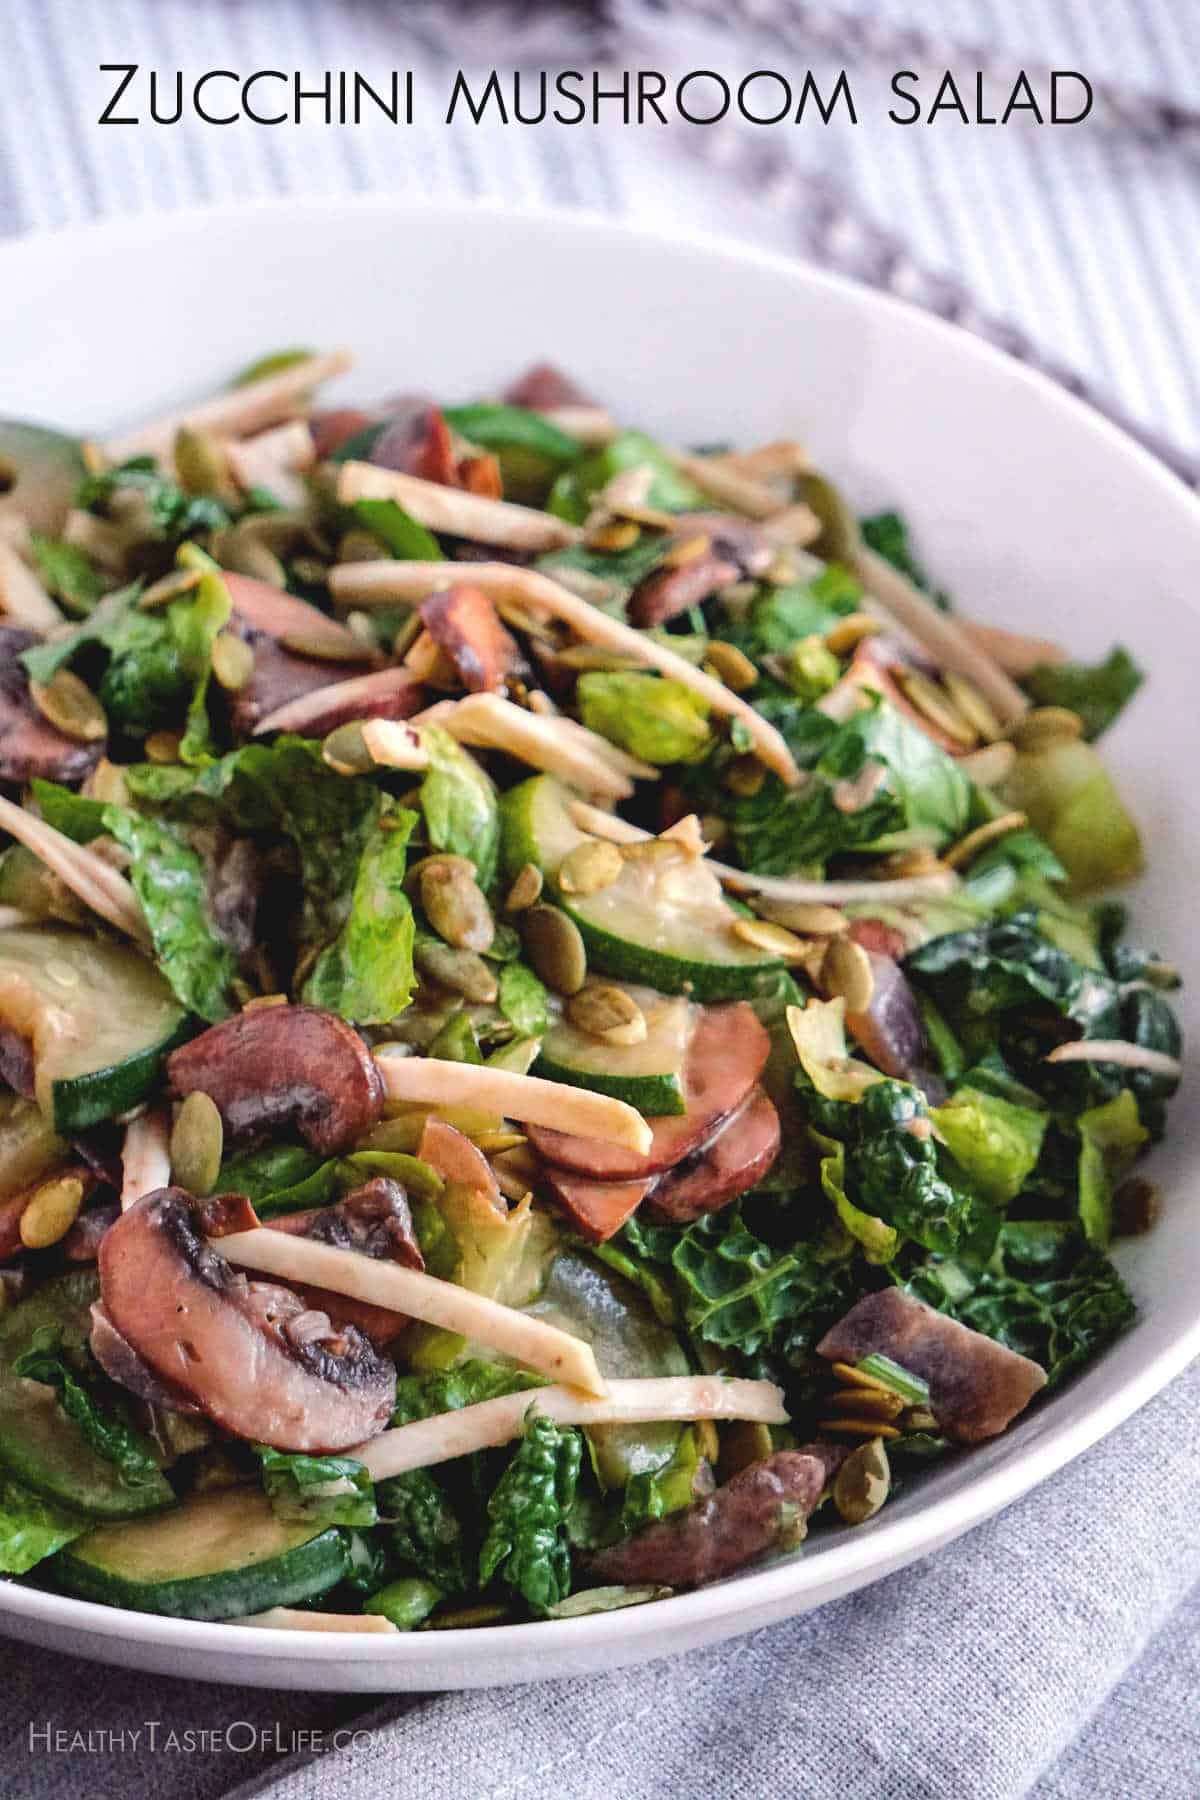 A warm zucchini mushroom salad that featured sautéed zucchini and mushrooms, avocado, raw celery root, greens and pumpkin seeds, all dressed in a simple creamy lemony salad dressing.